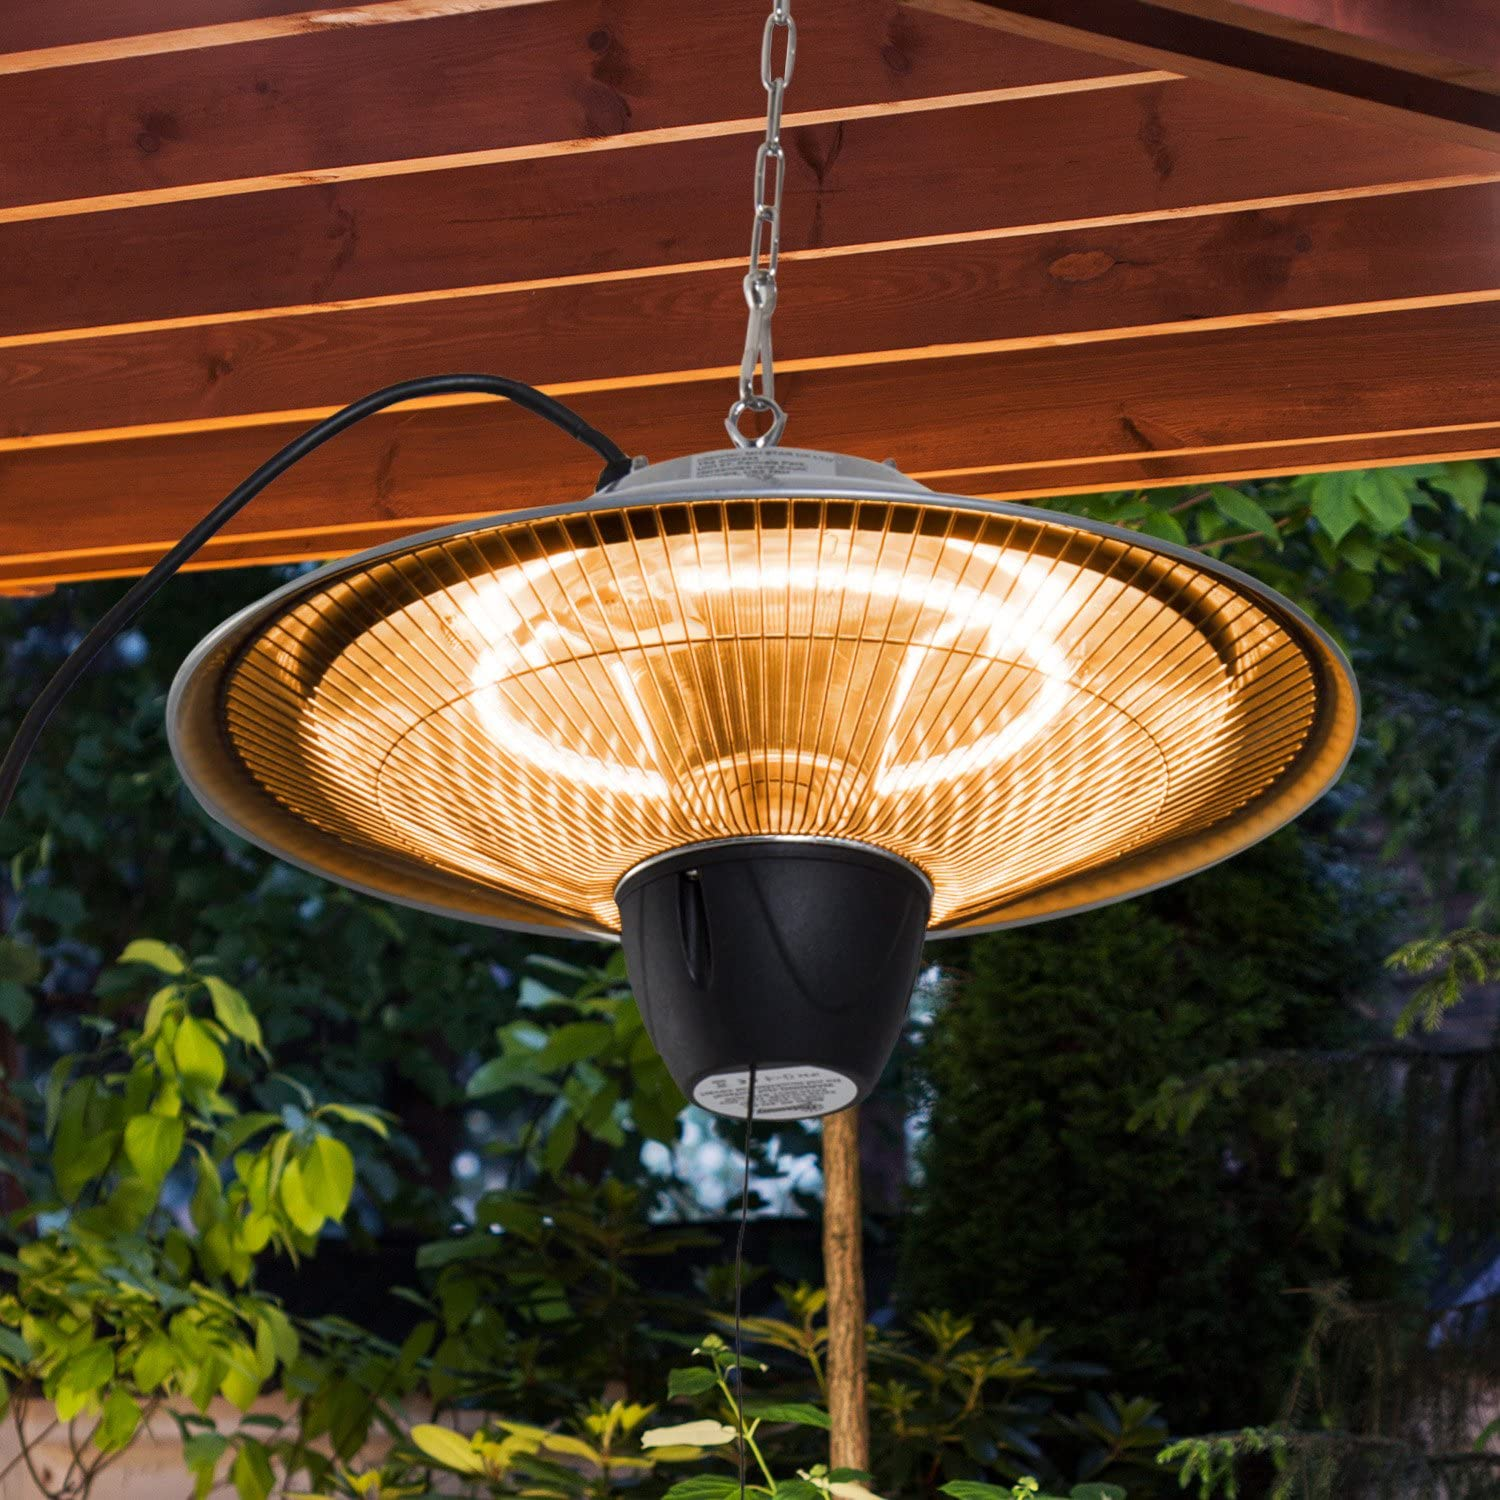 Outsunny 1500W Patio Heater Outdoor Ceiling Mounted